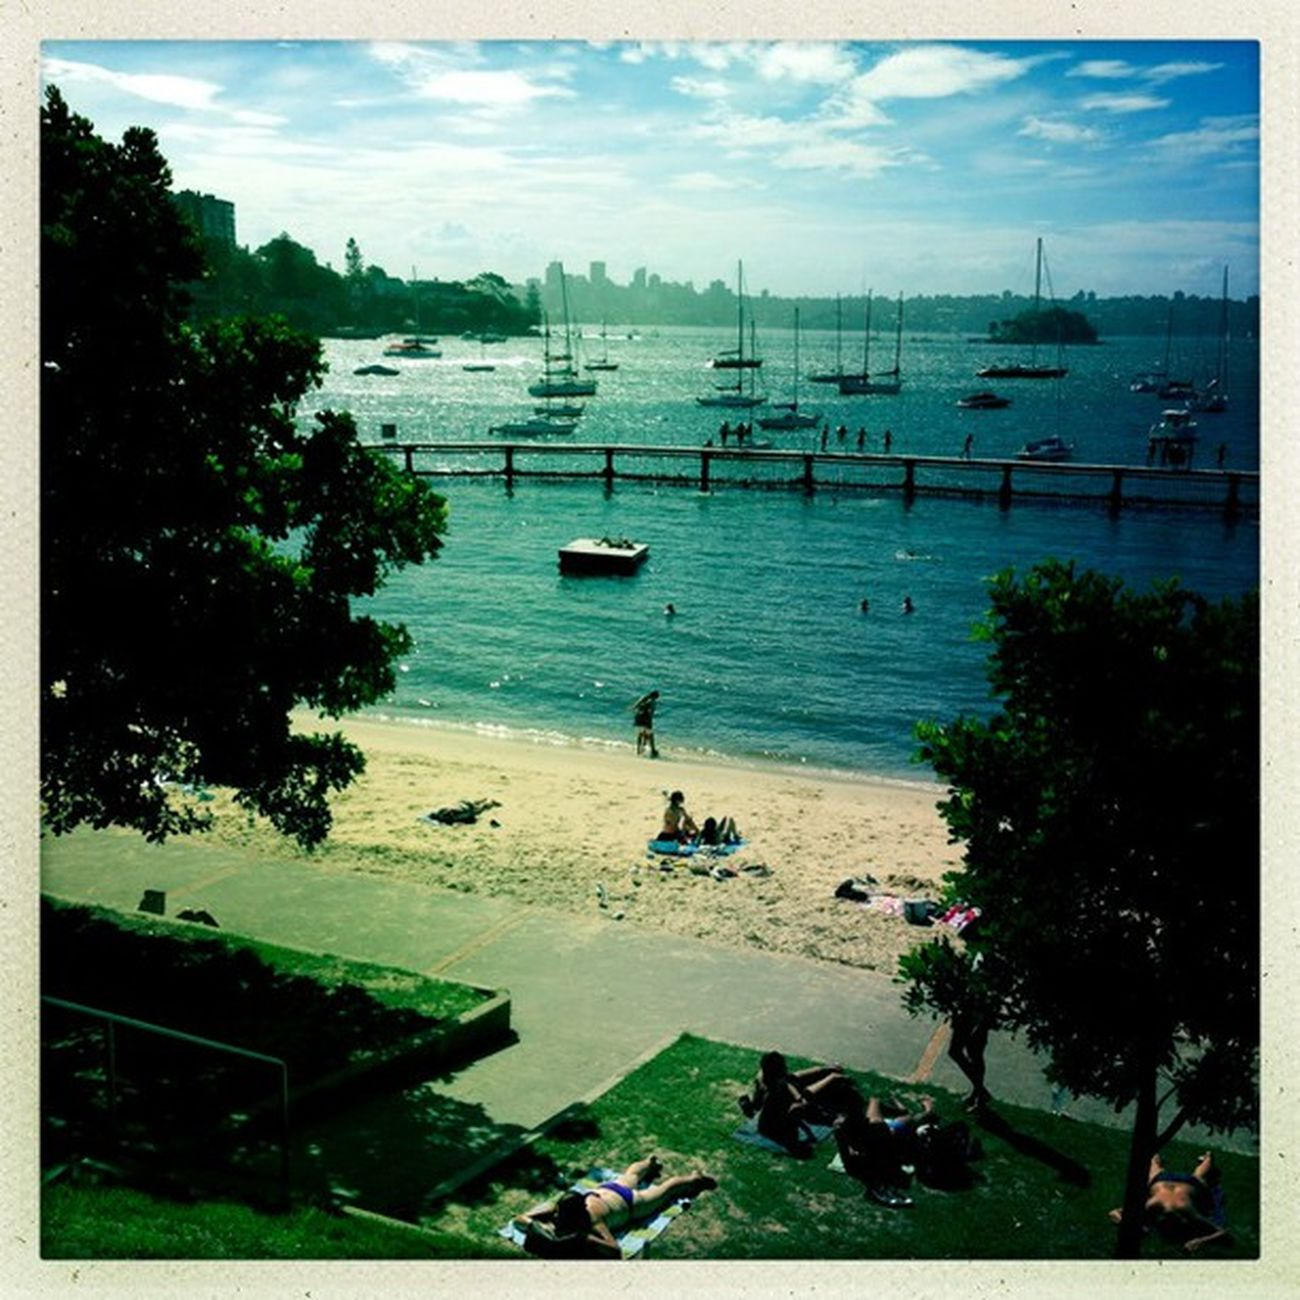 I think I've found my new favourite ocean swim, Murray Rose Pool! Hipstamatic Johns Inas1982